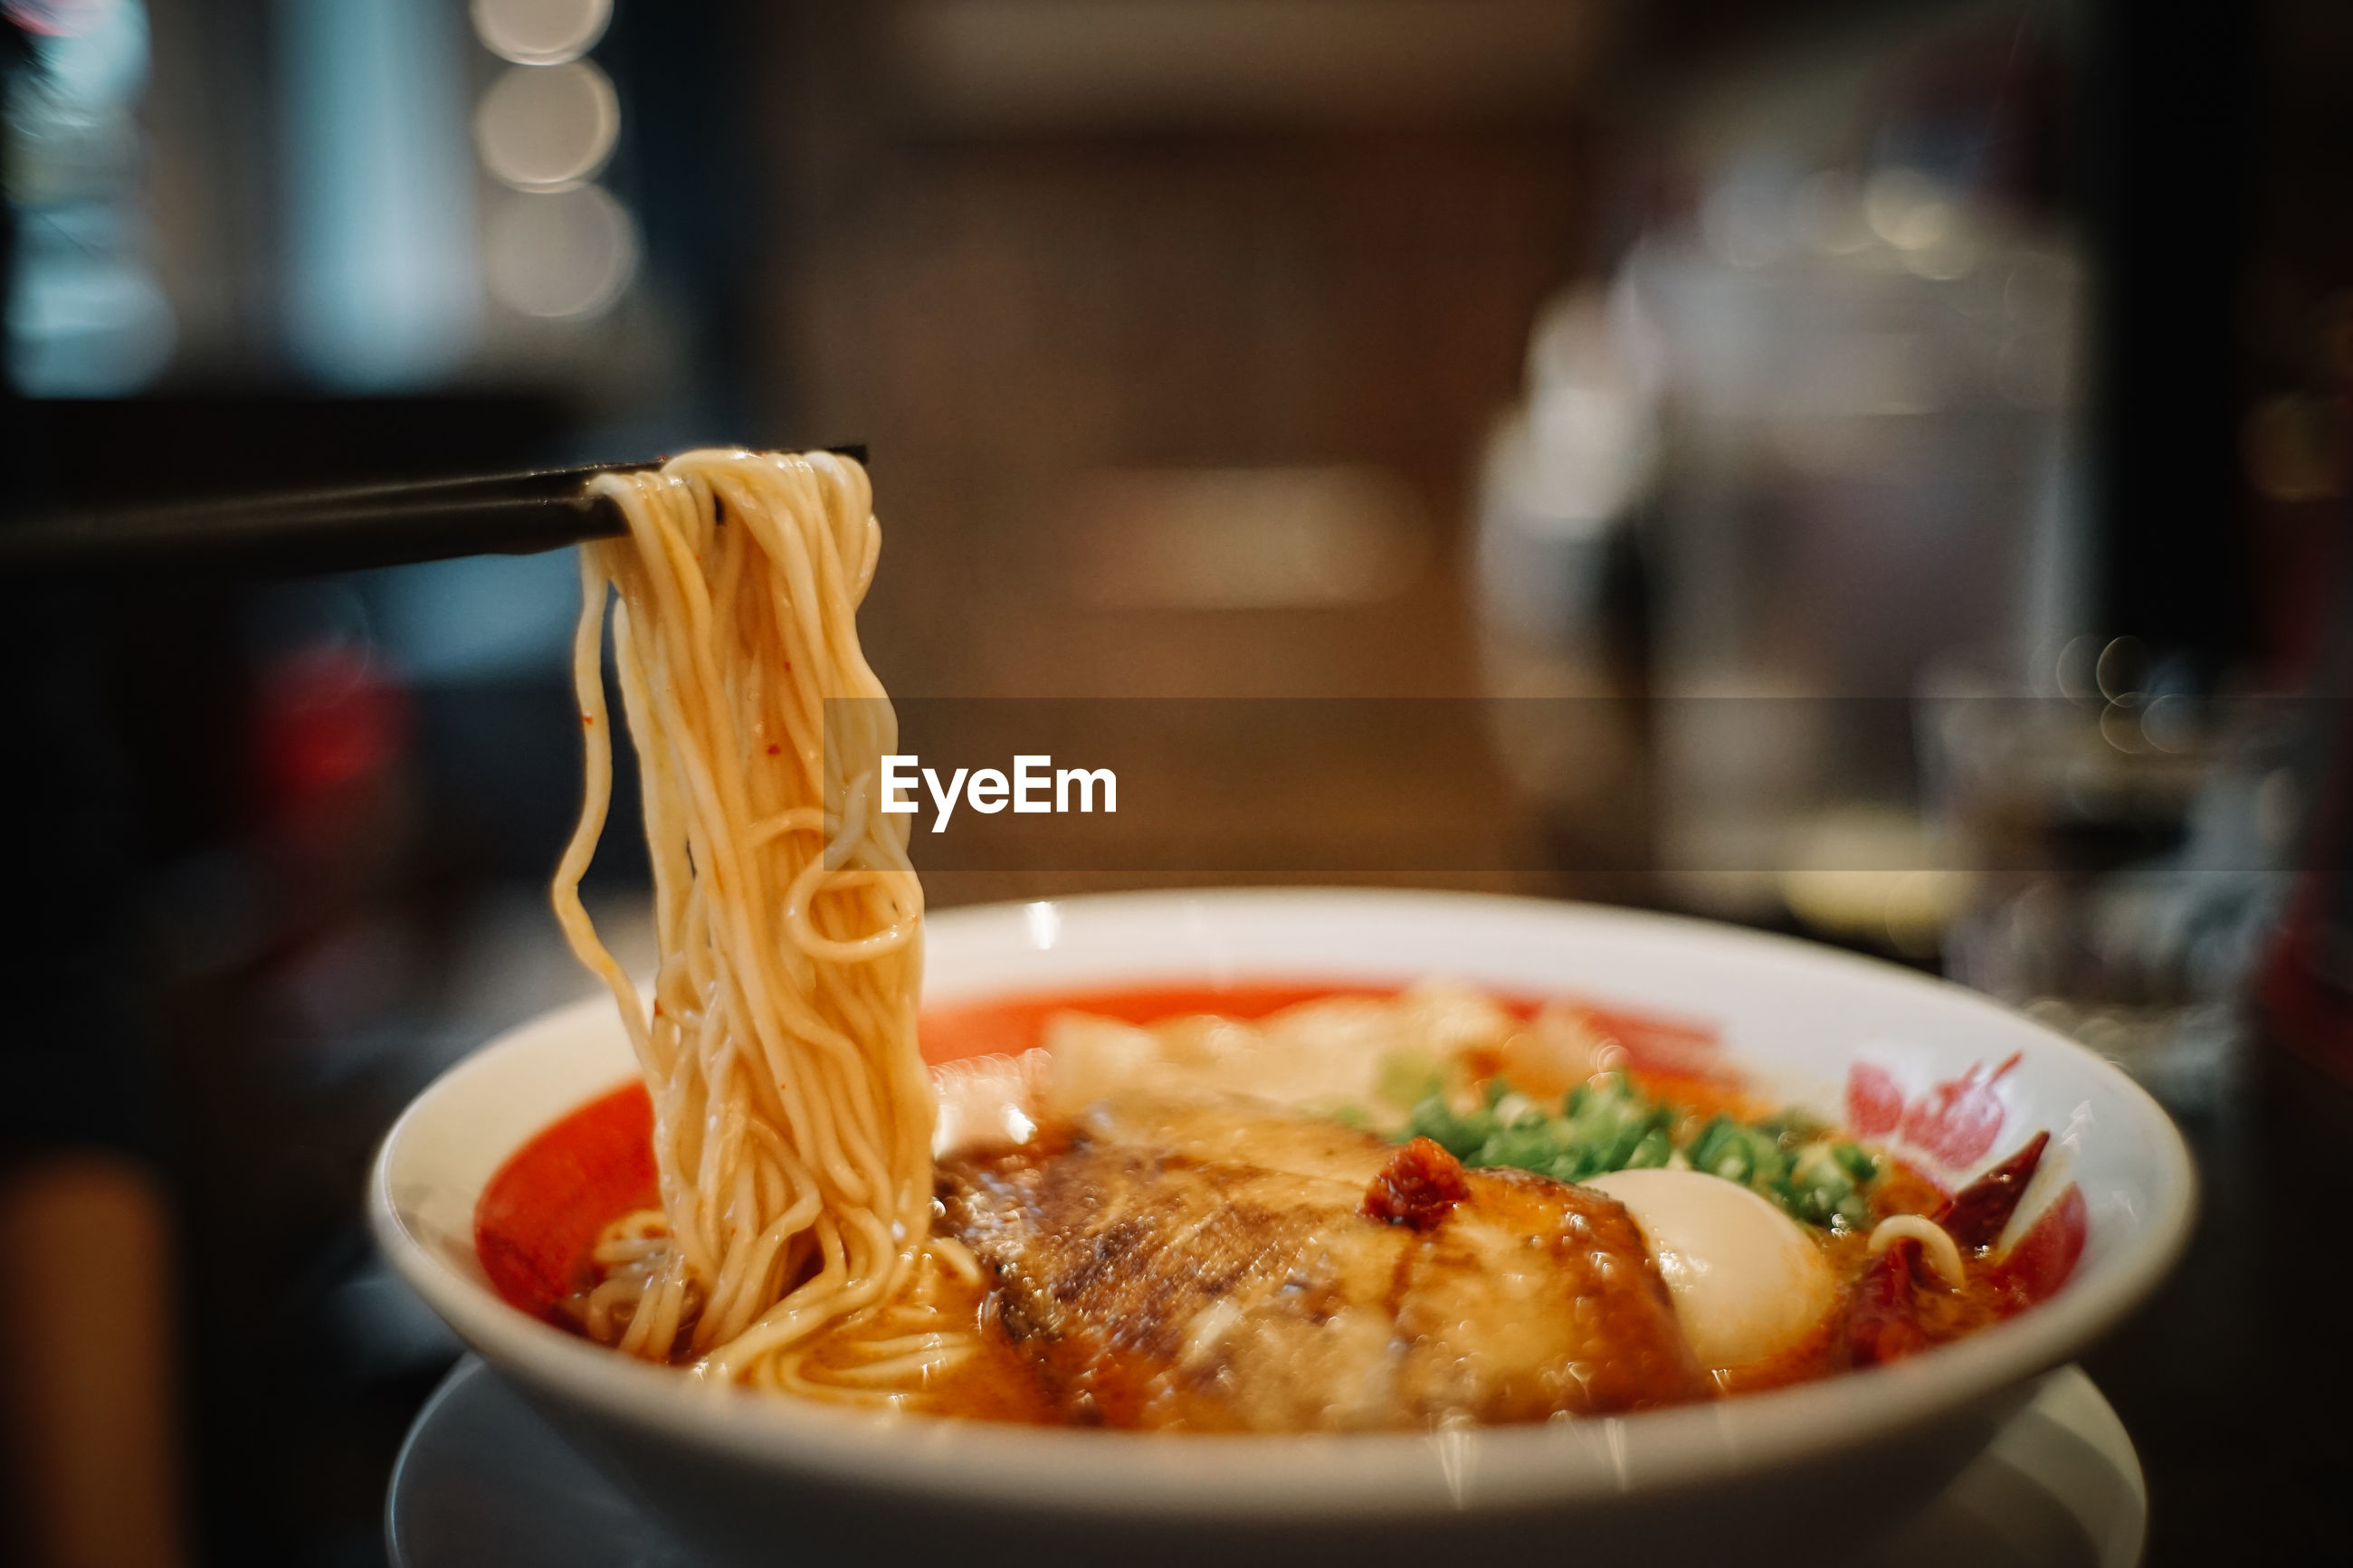 Close-up of spaghetti and meat served in bowl on table